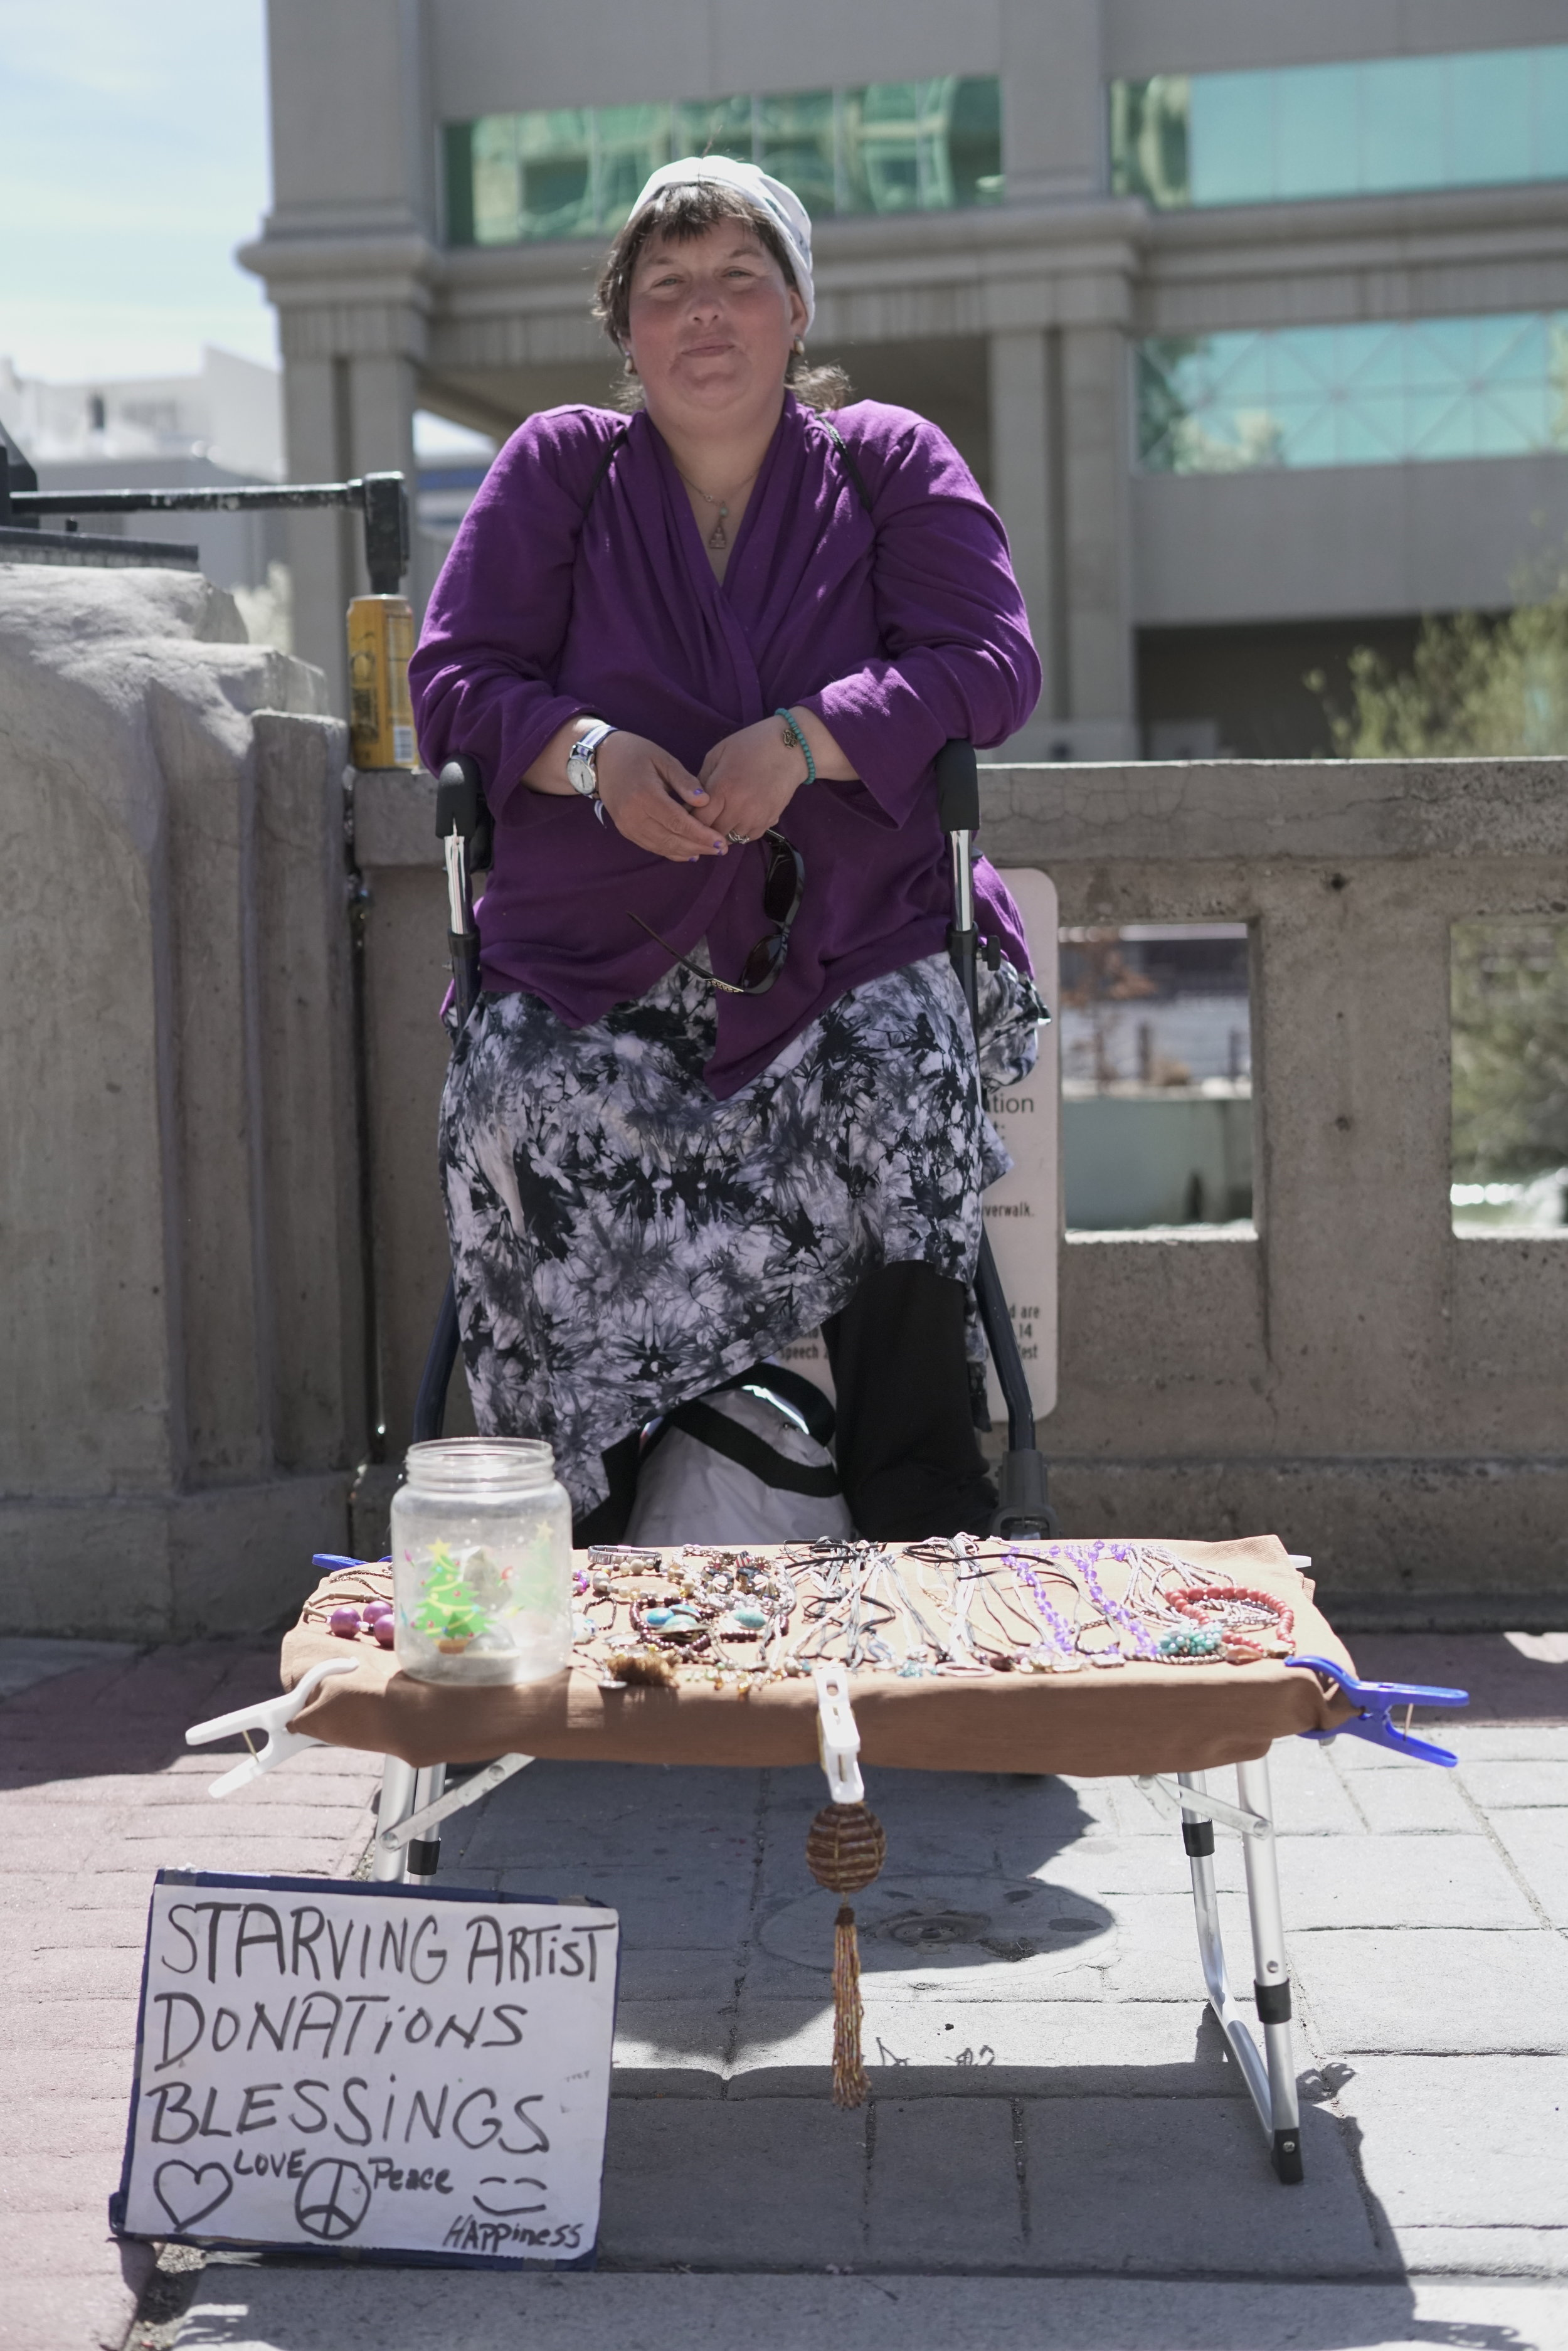 Paula describes herself as a starving artist, but continues to persevere daily.